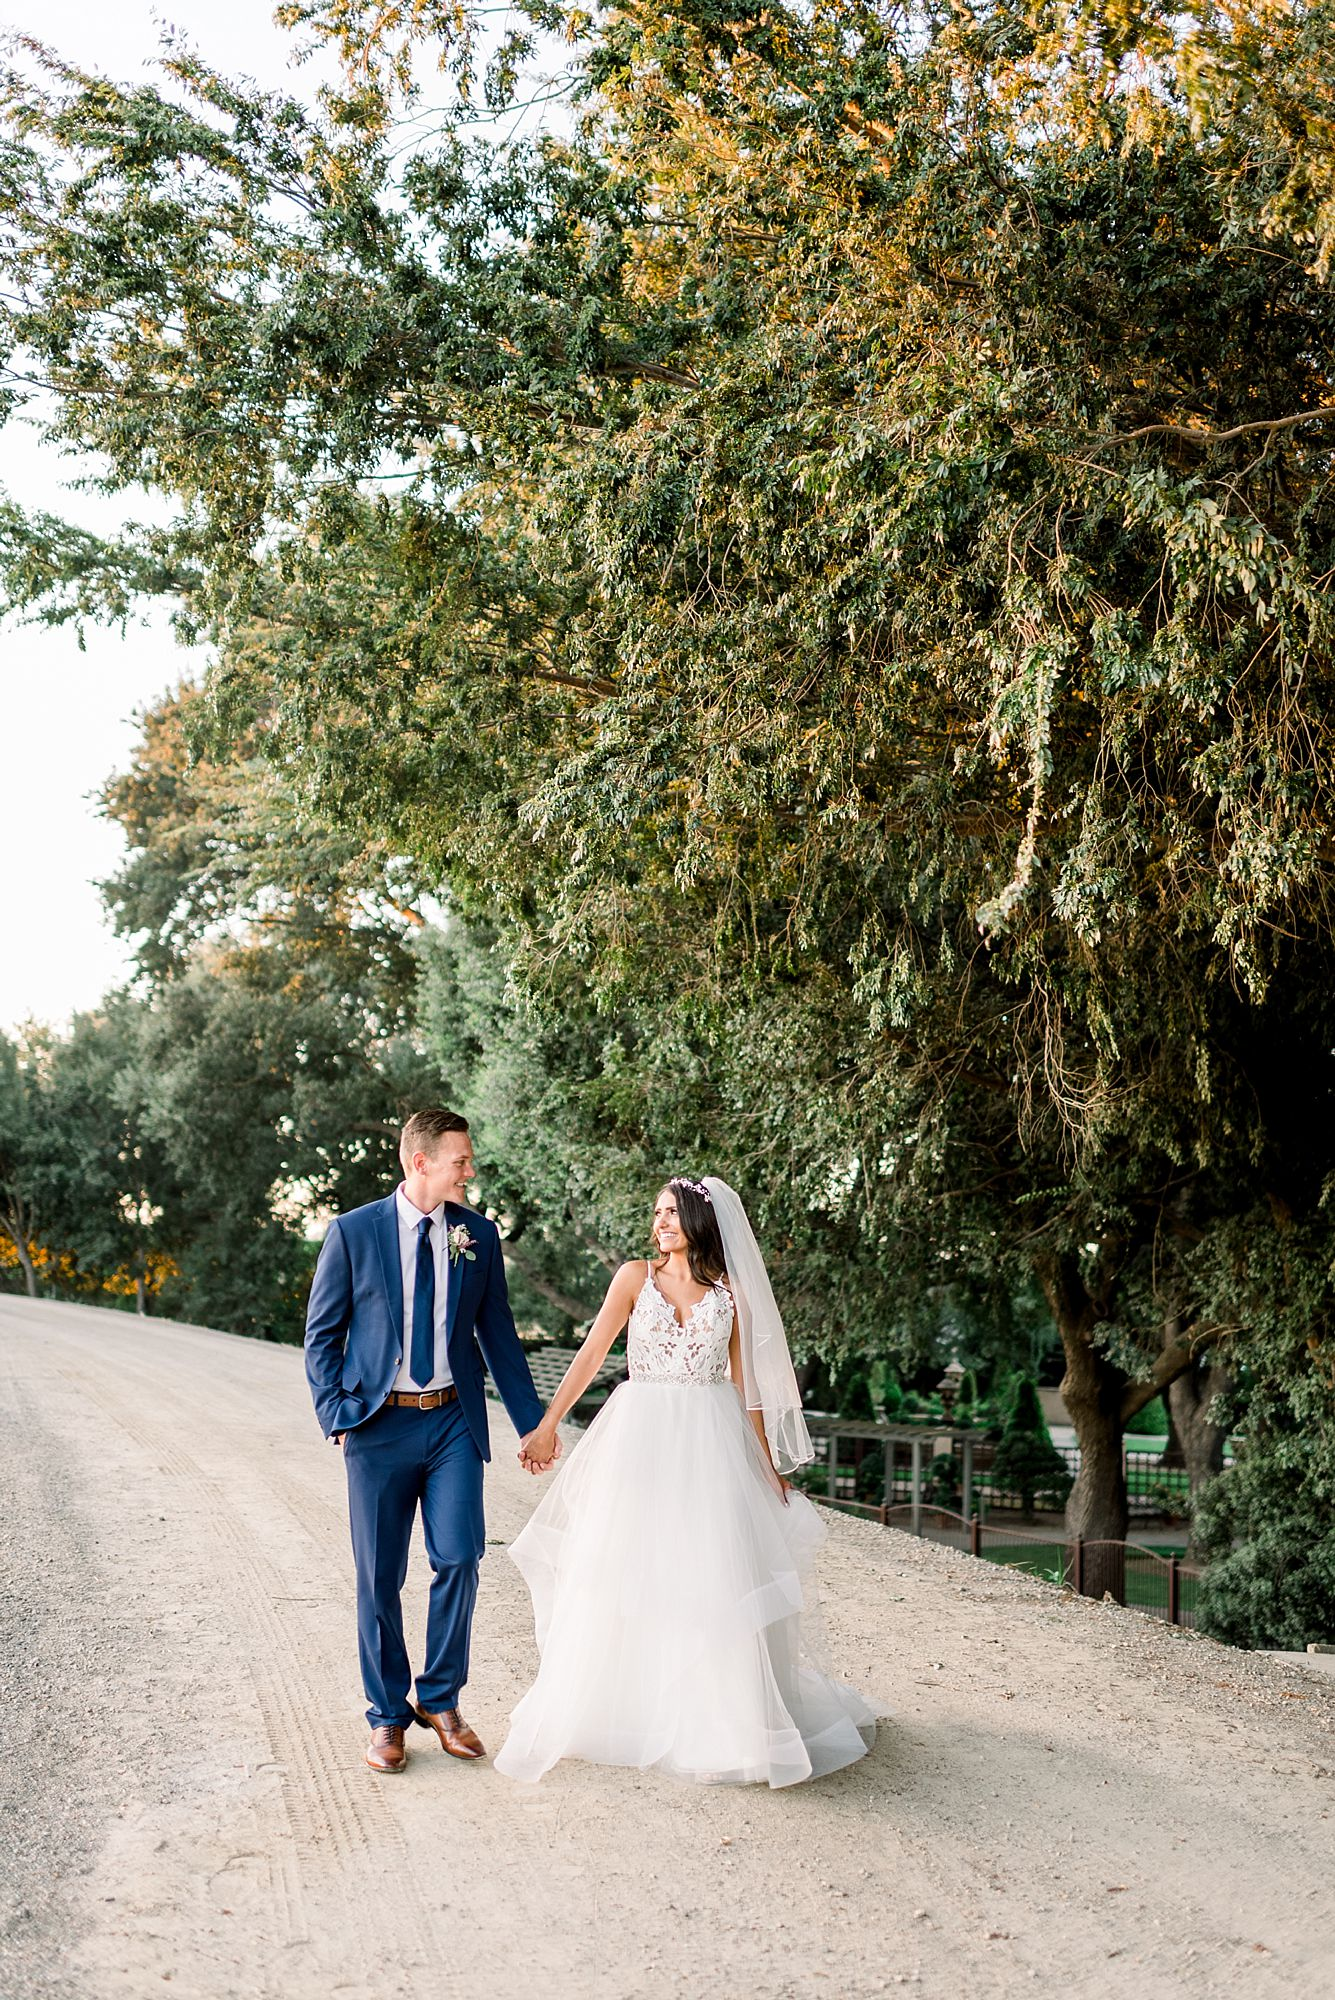 The River Mill Wedding Stockton - Ashley Baumgartner - Stockton Wedding Photographer - Sacramento Wedding Photography - Hybrid and Film Photographer - Sacramento Film Photographer_0055.jpg